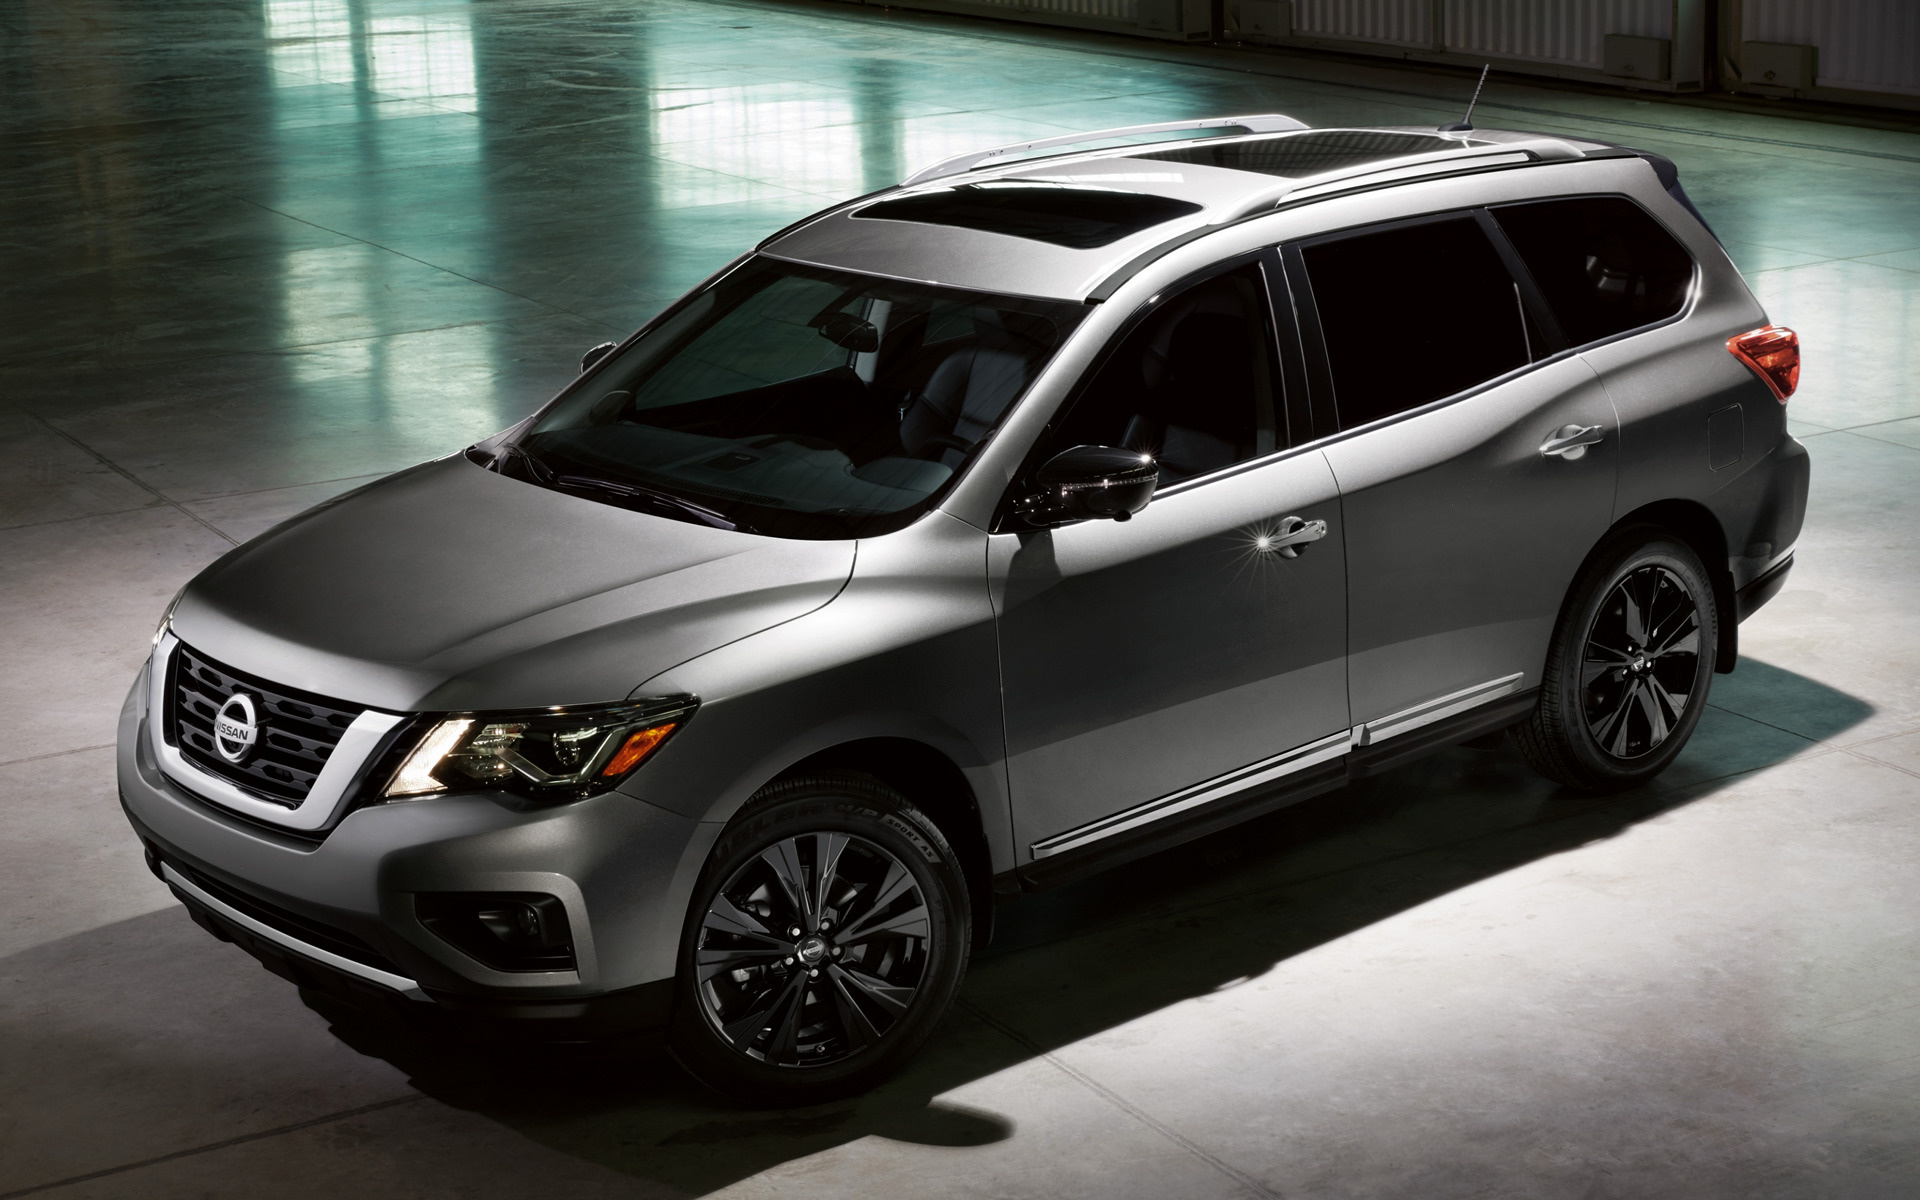 2017 Nissan Pathfinder Midnight Edition   Wallpapers and HD Images 1920x1200